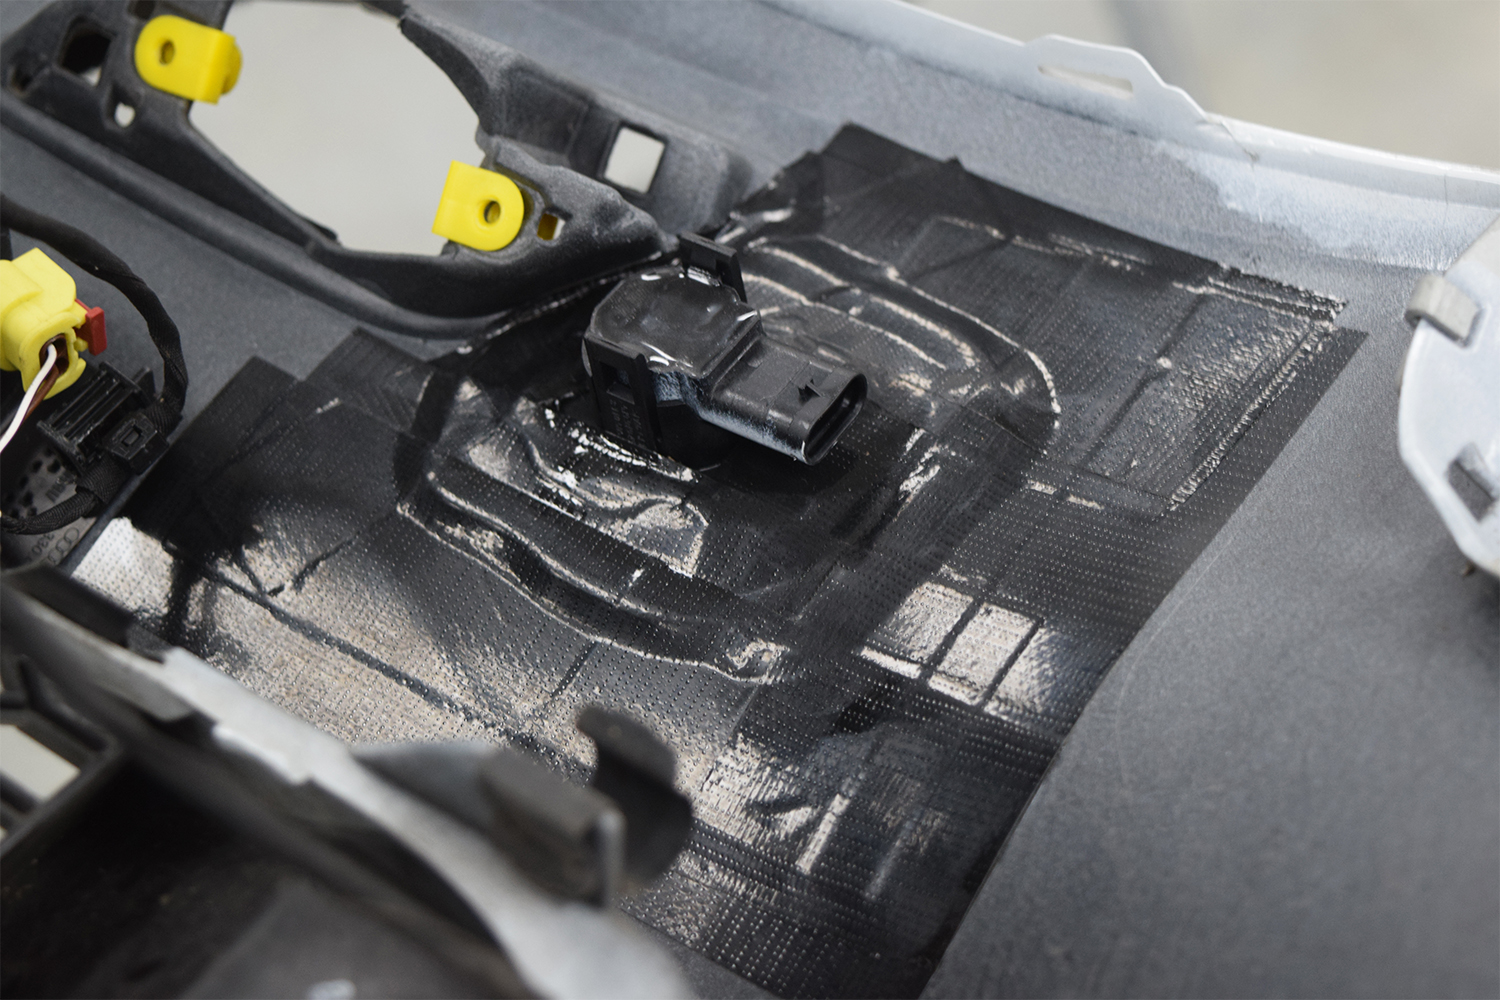 Audi S3 Internal Sensor Mounted